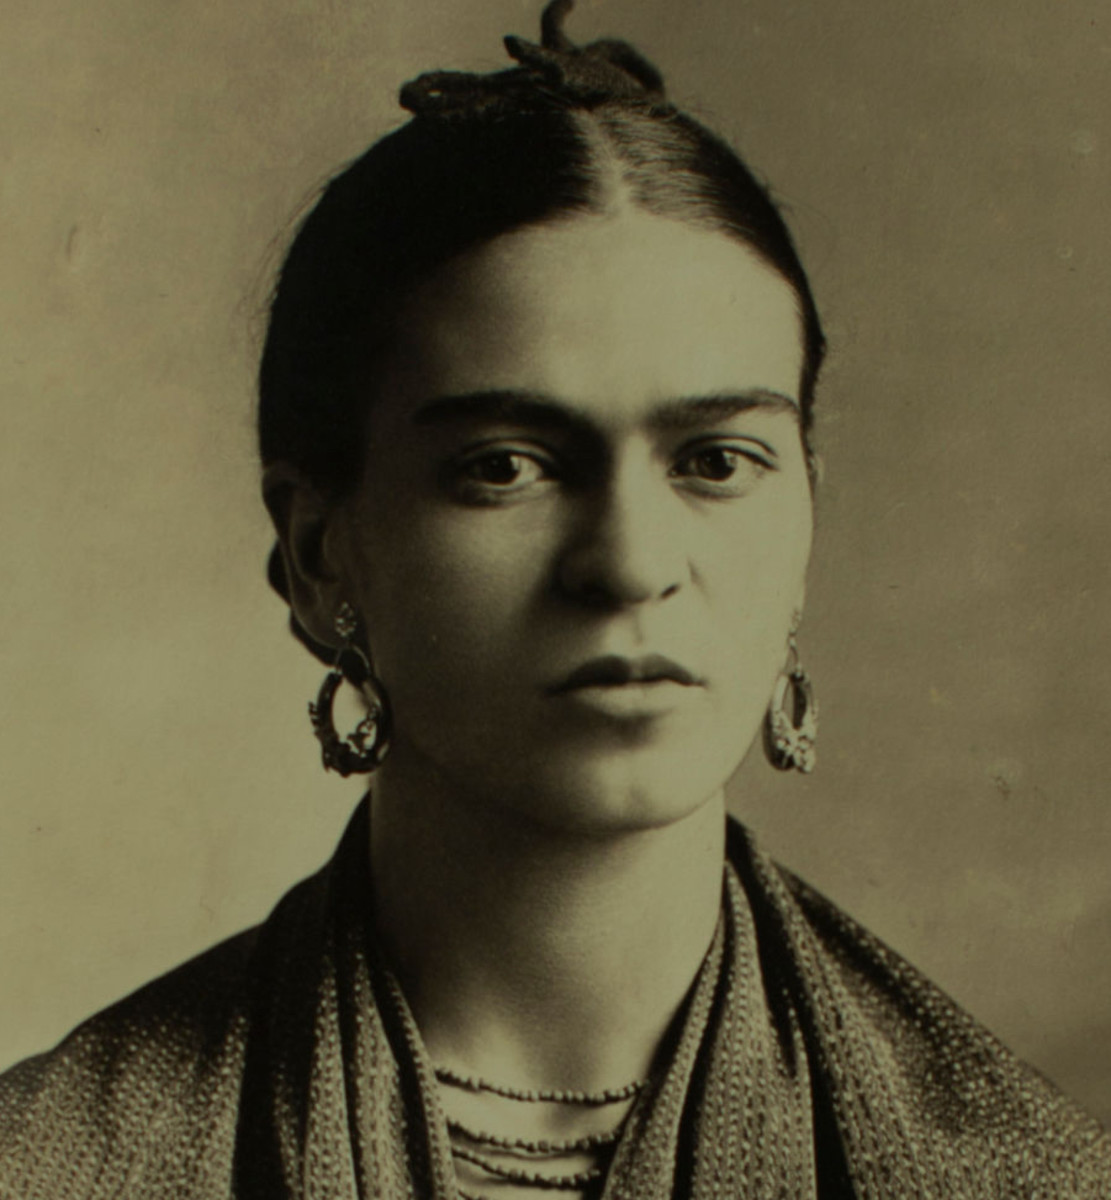 Frida Kahlo, a bisexual feminist Hispanic artist who was both iconic and outspoken about her identity and her paintings. She is known for many works, one of which is a self-portrait where she makes prominent her unshaved eyebrows to challenge feminine standards.